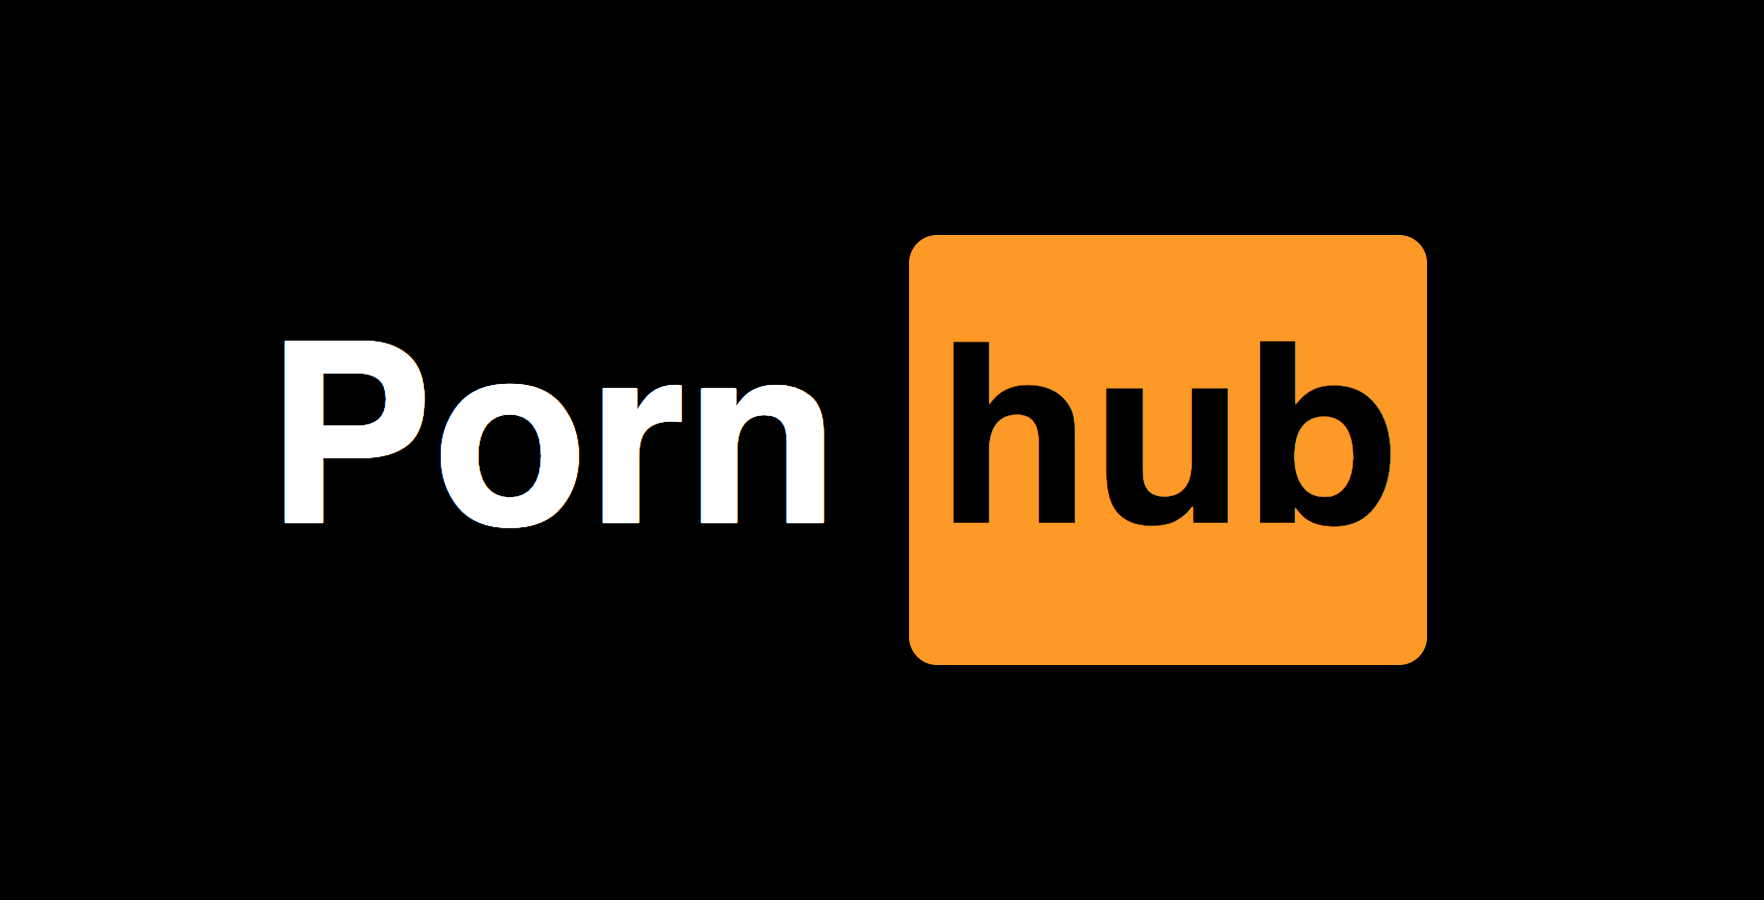 Porn hub deletes 60 percent of videos in huge move to rid site of your mom